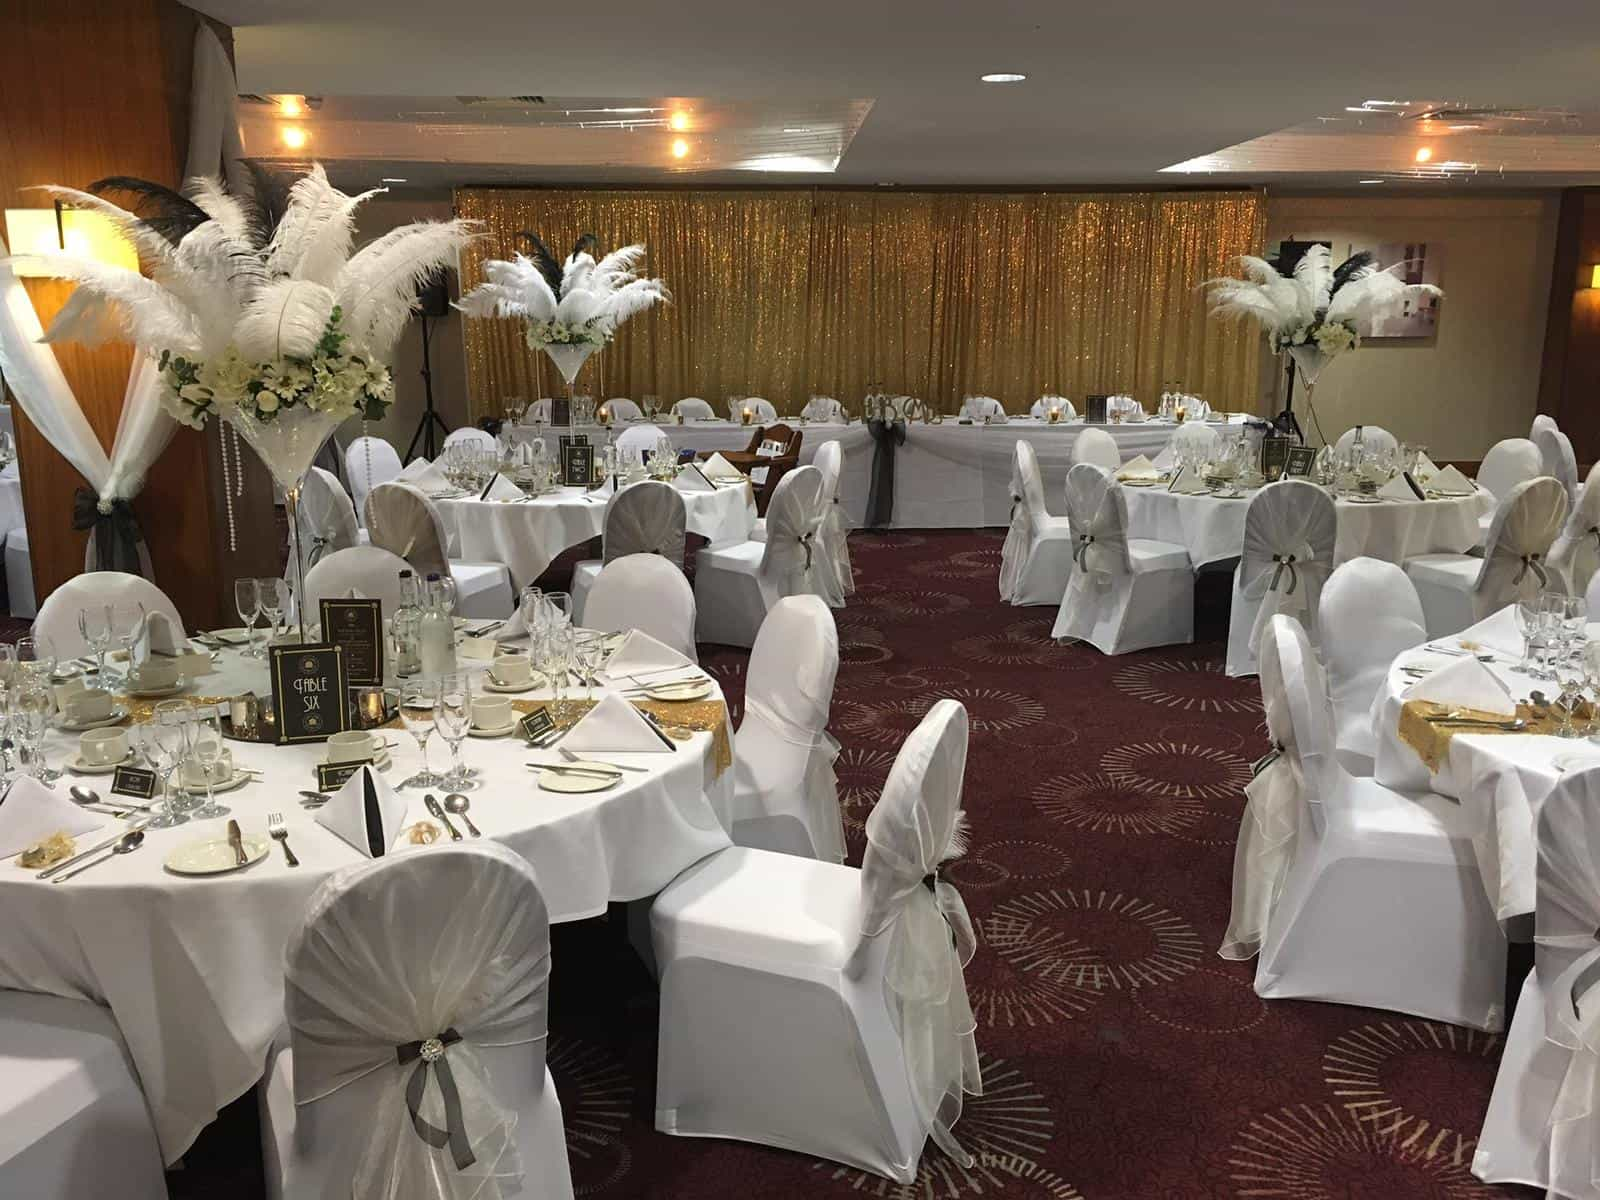 beautiful wedding venue dressing with white plumes as table centrepieces and white table and chair linen